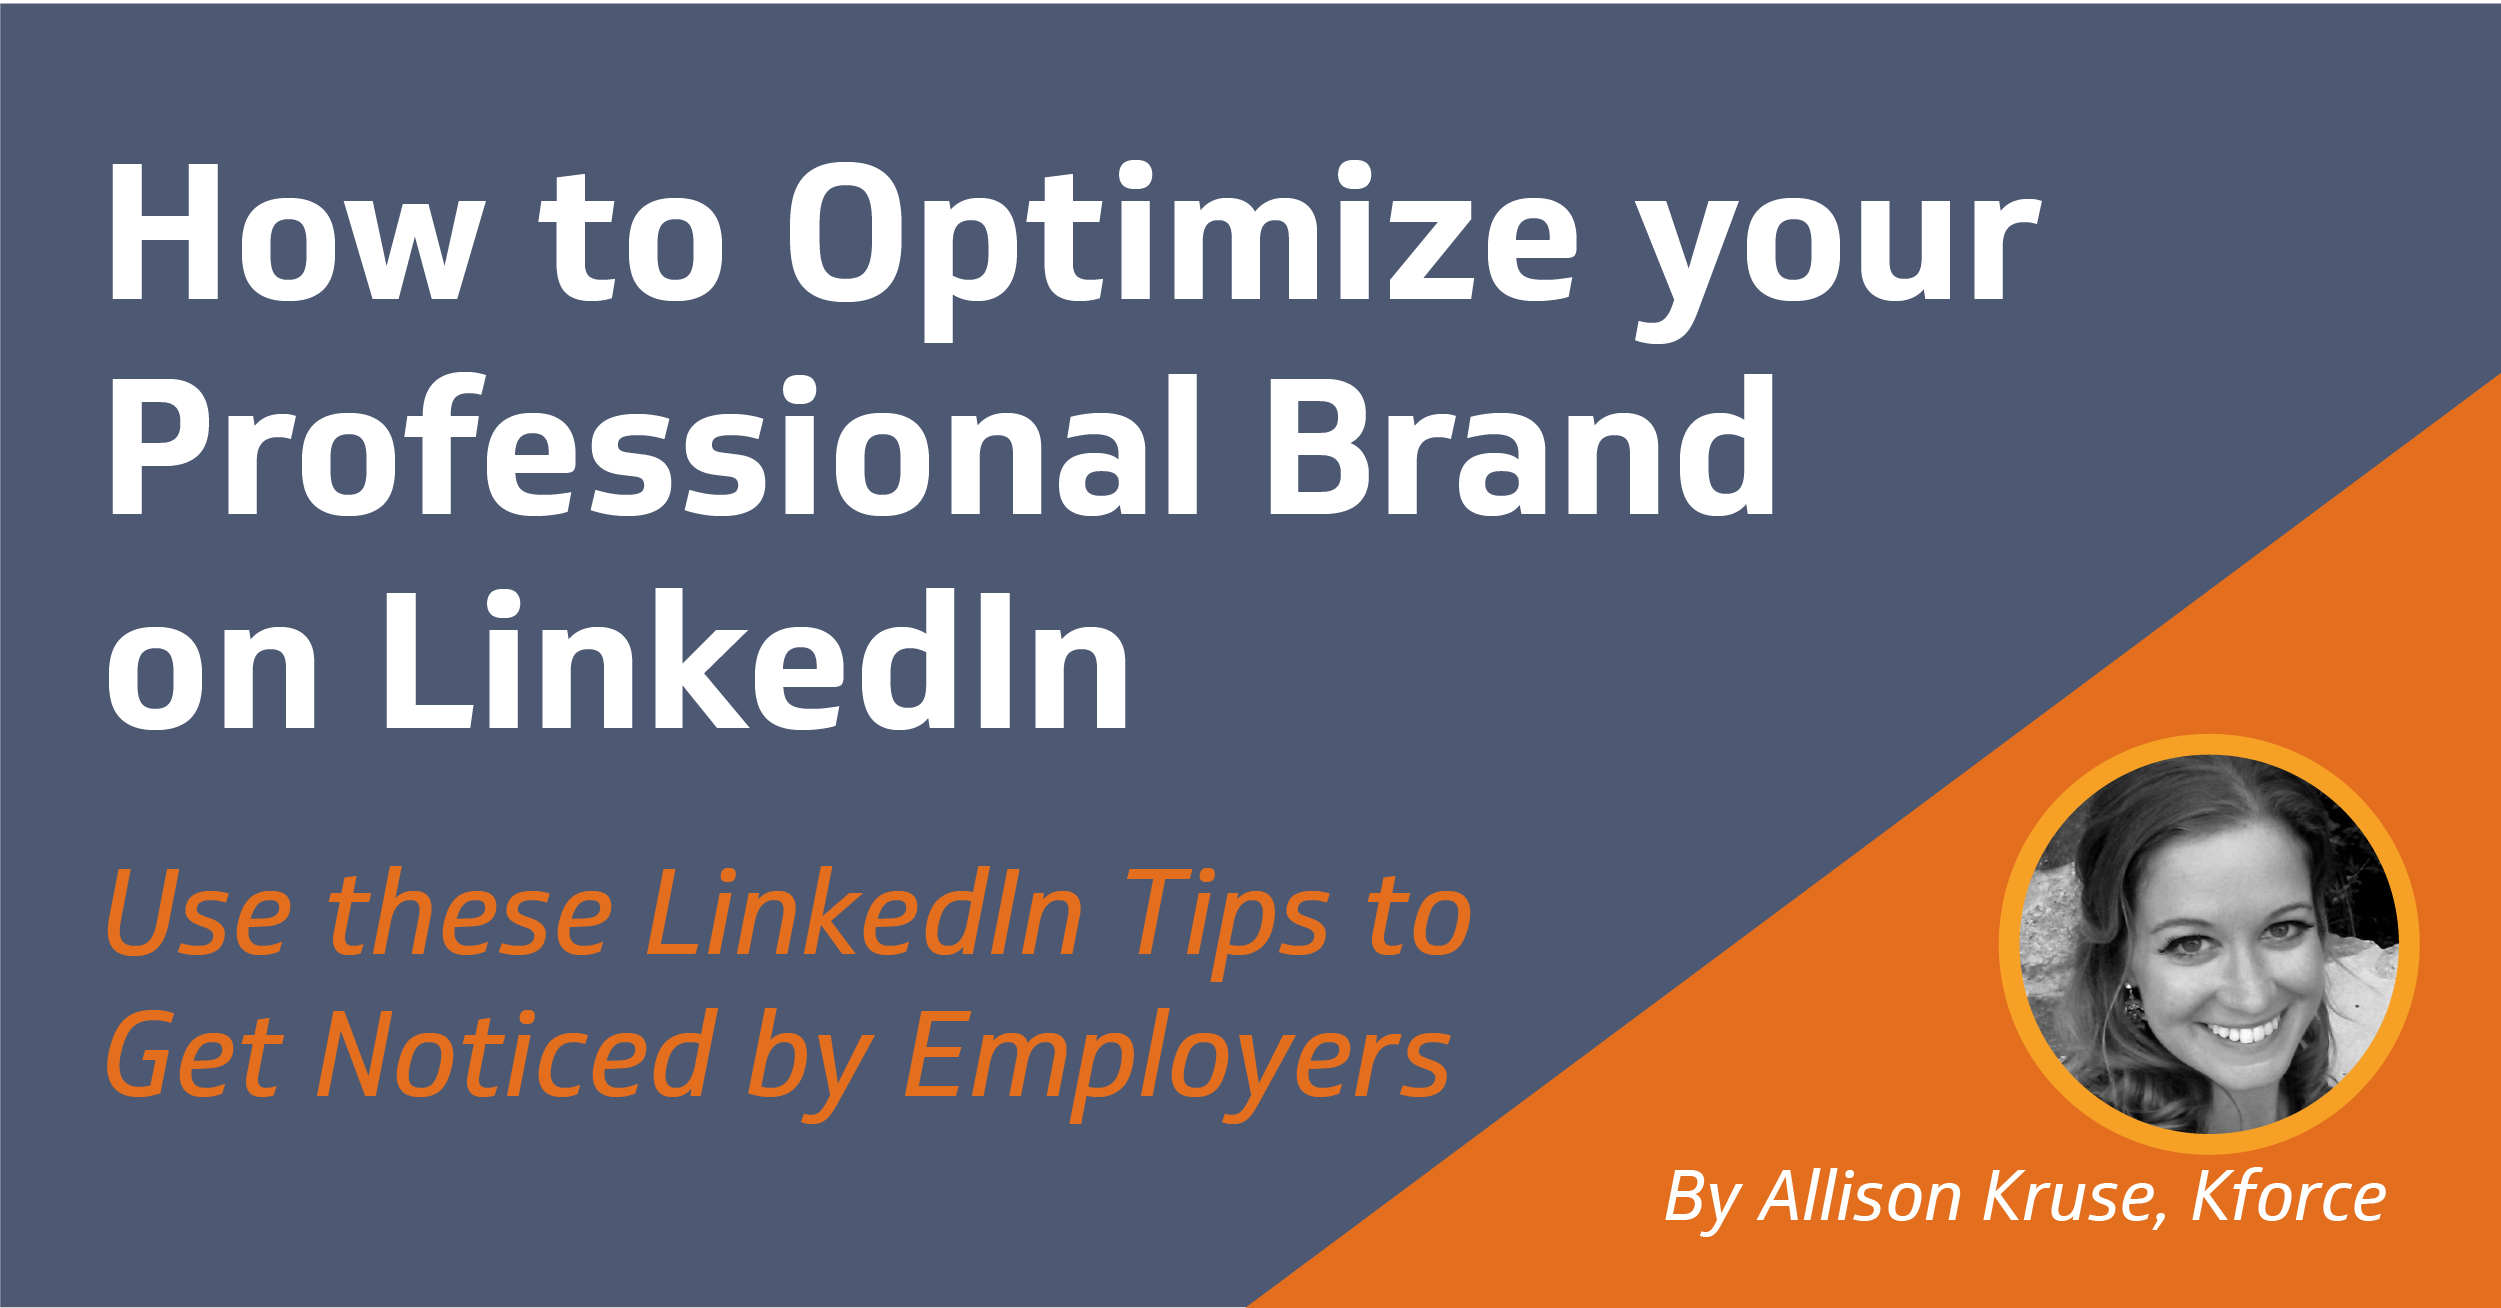 LinkedIn - What's your professional brand?